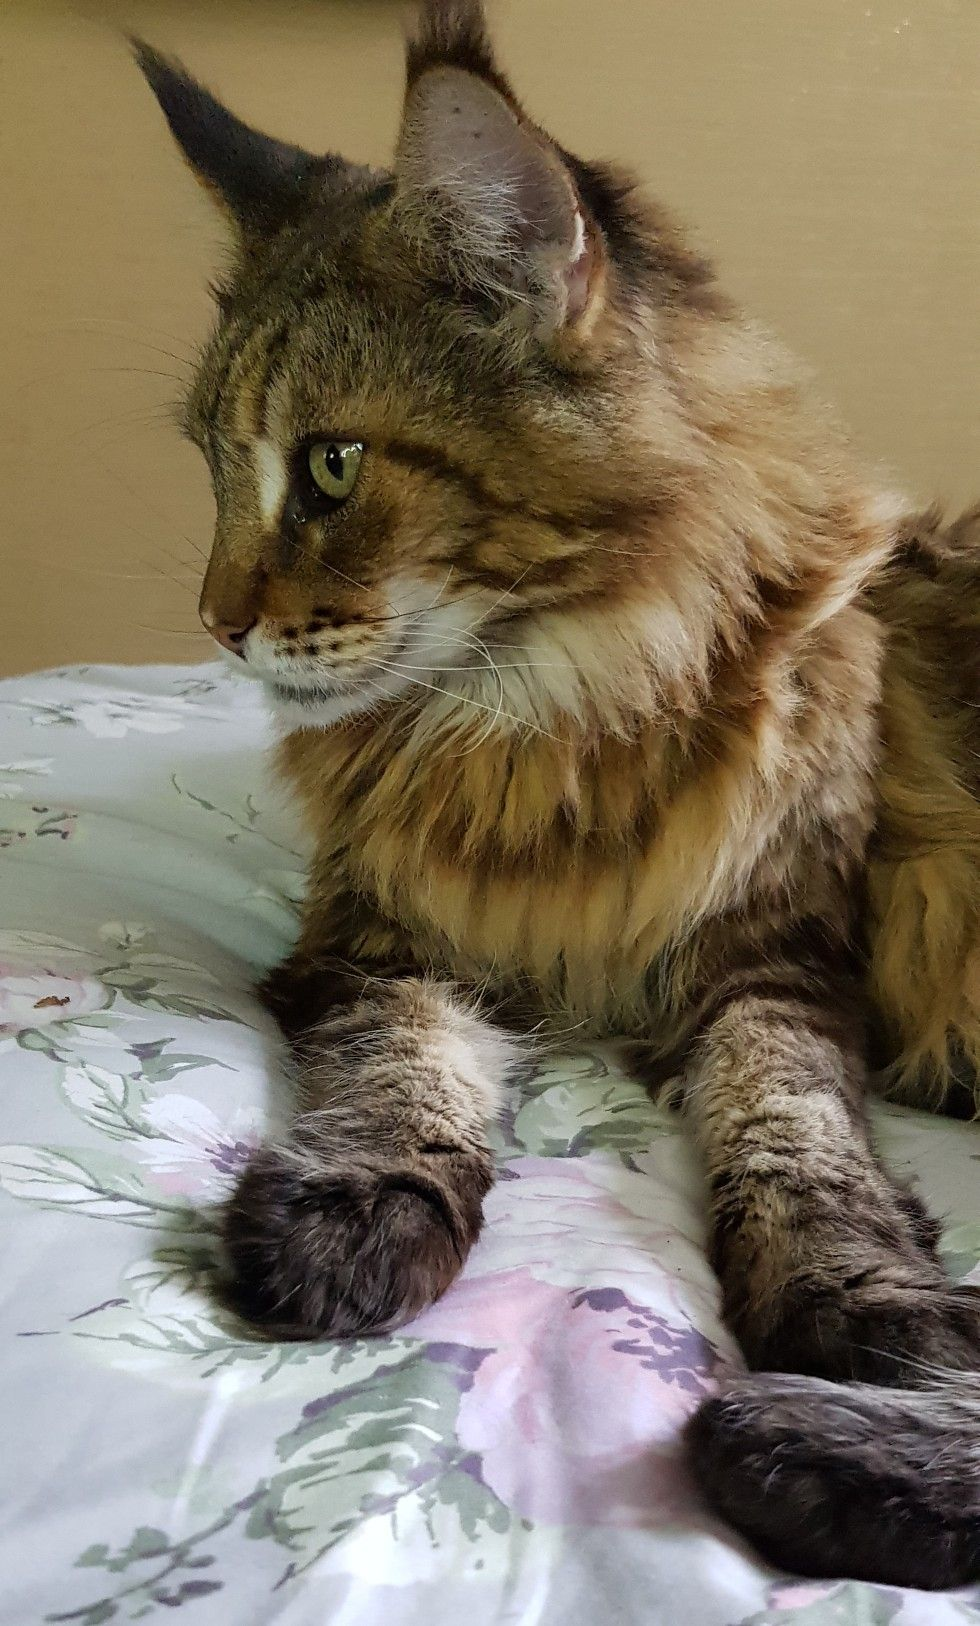 Adorable long haired tabby. (With images) Cute cat